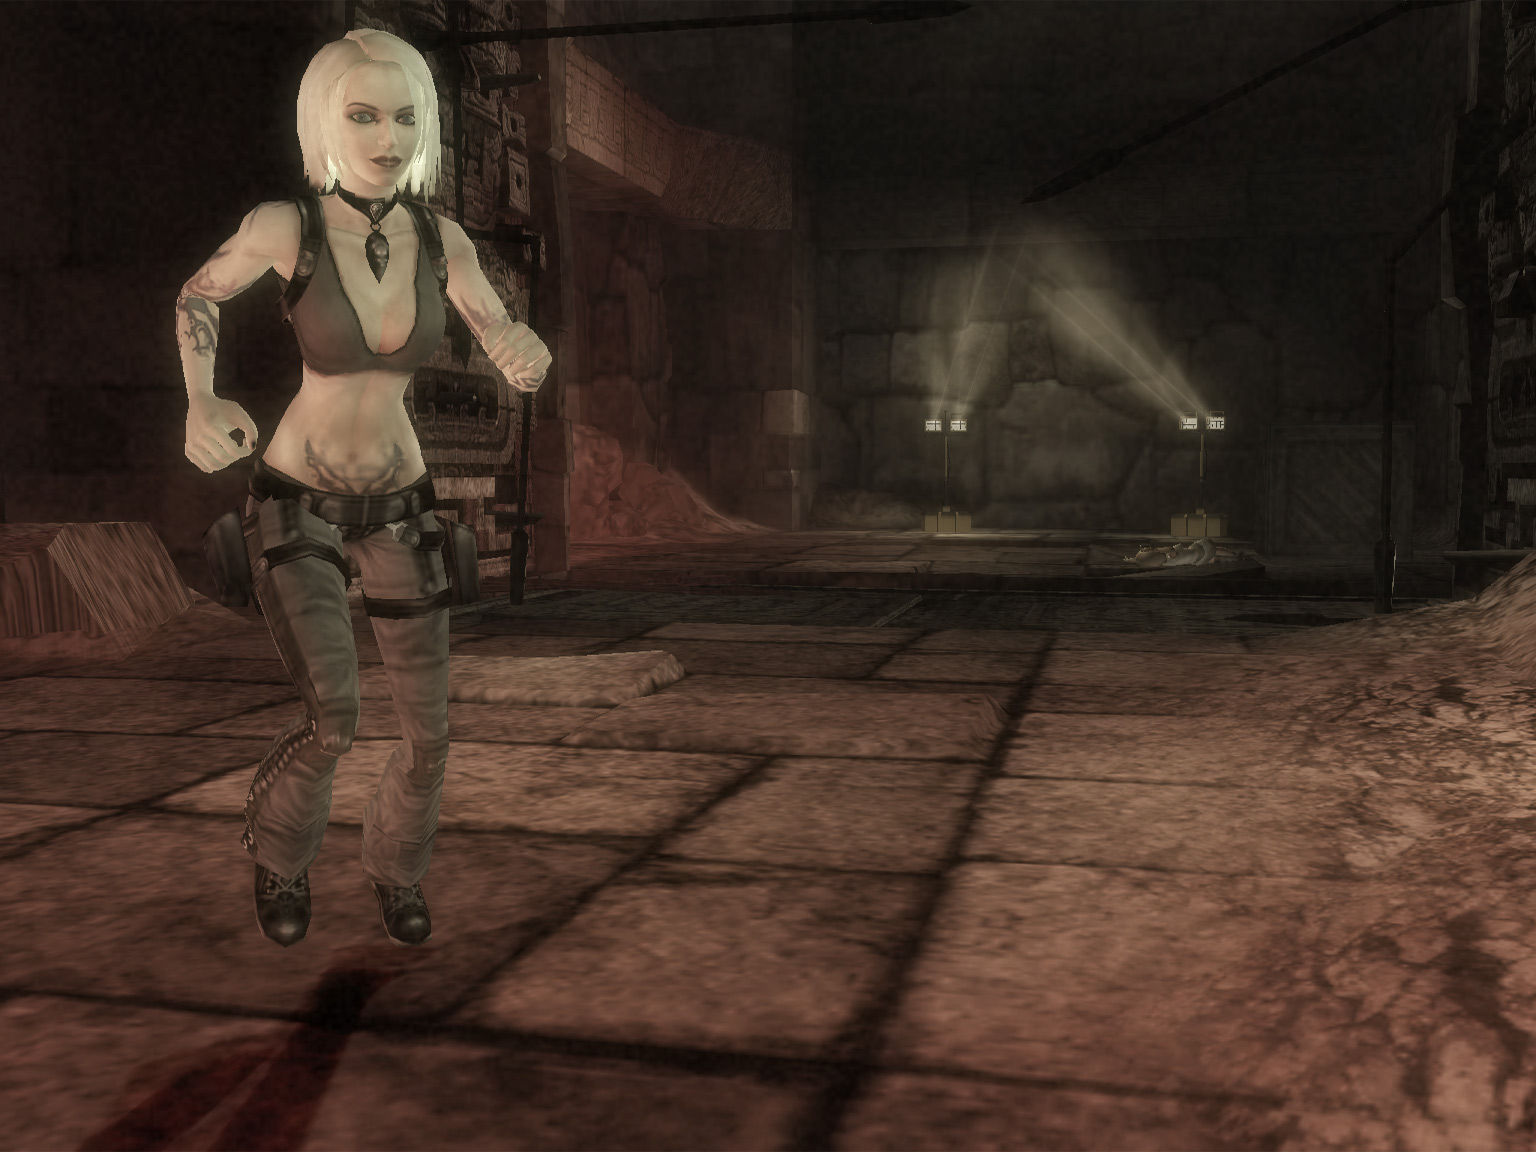 Tomb raider legend amanda mod naked streaming